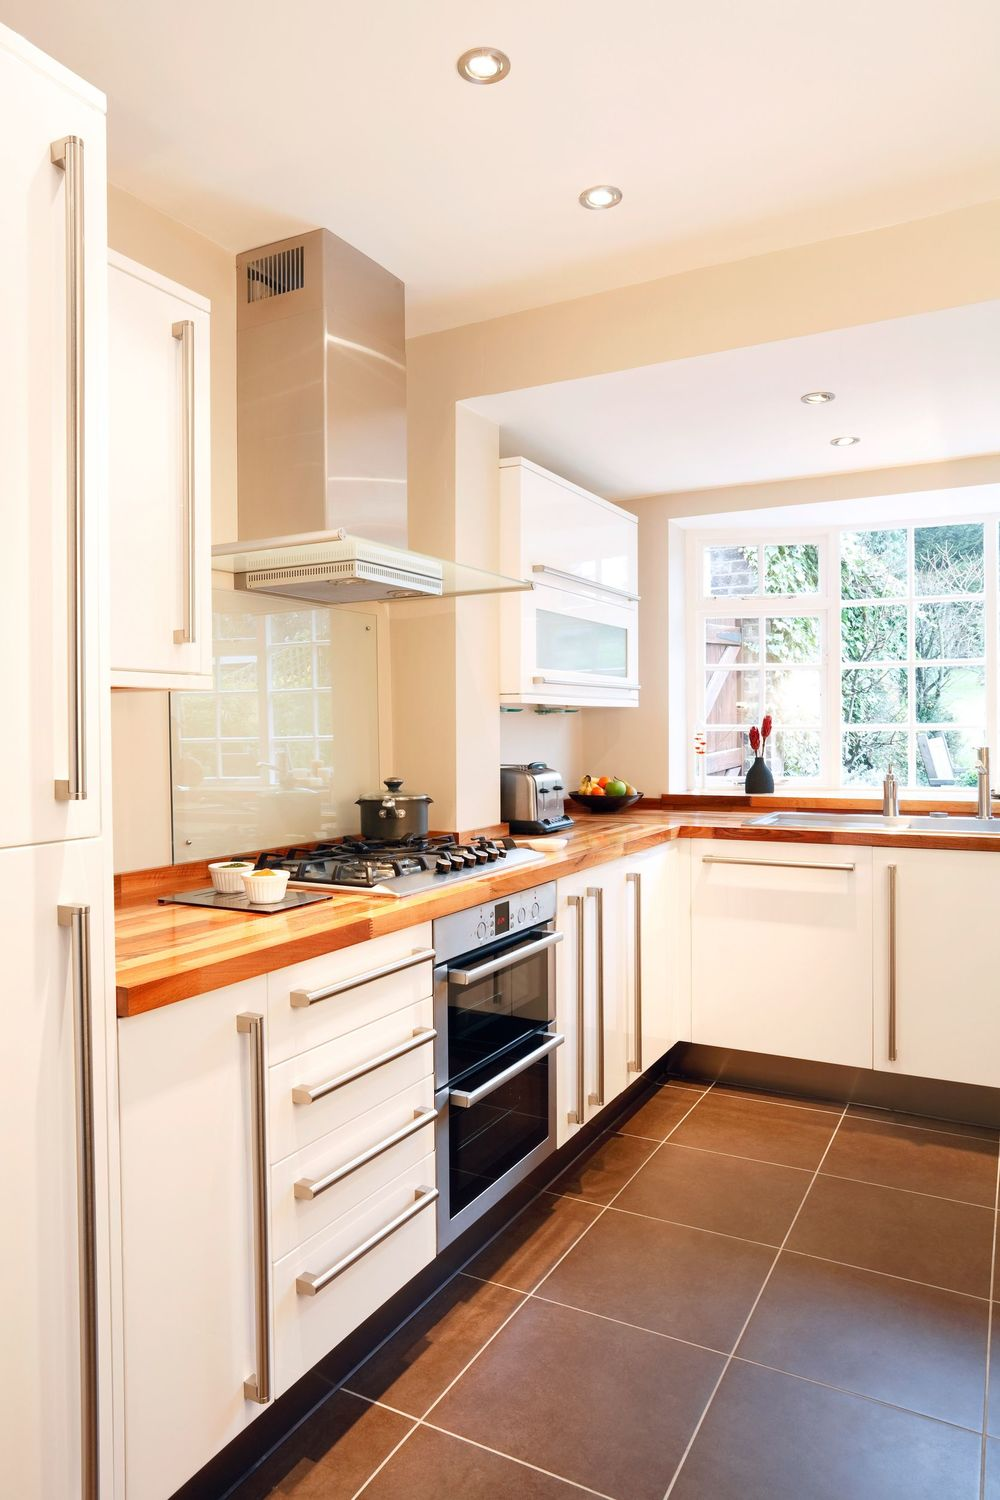 1oak_kitchen04.jpg